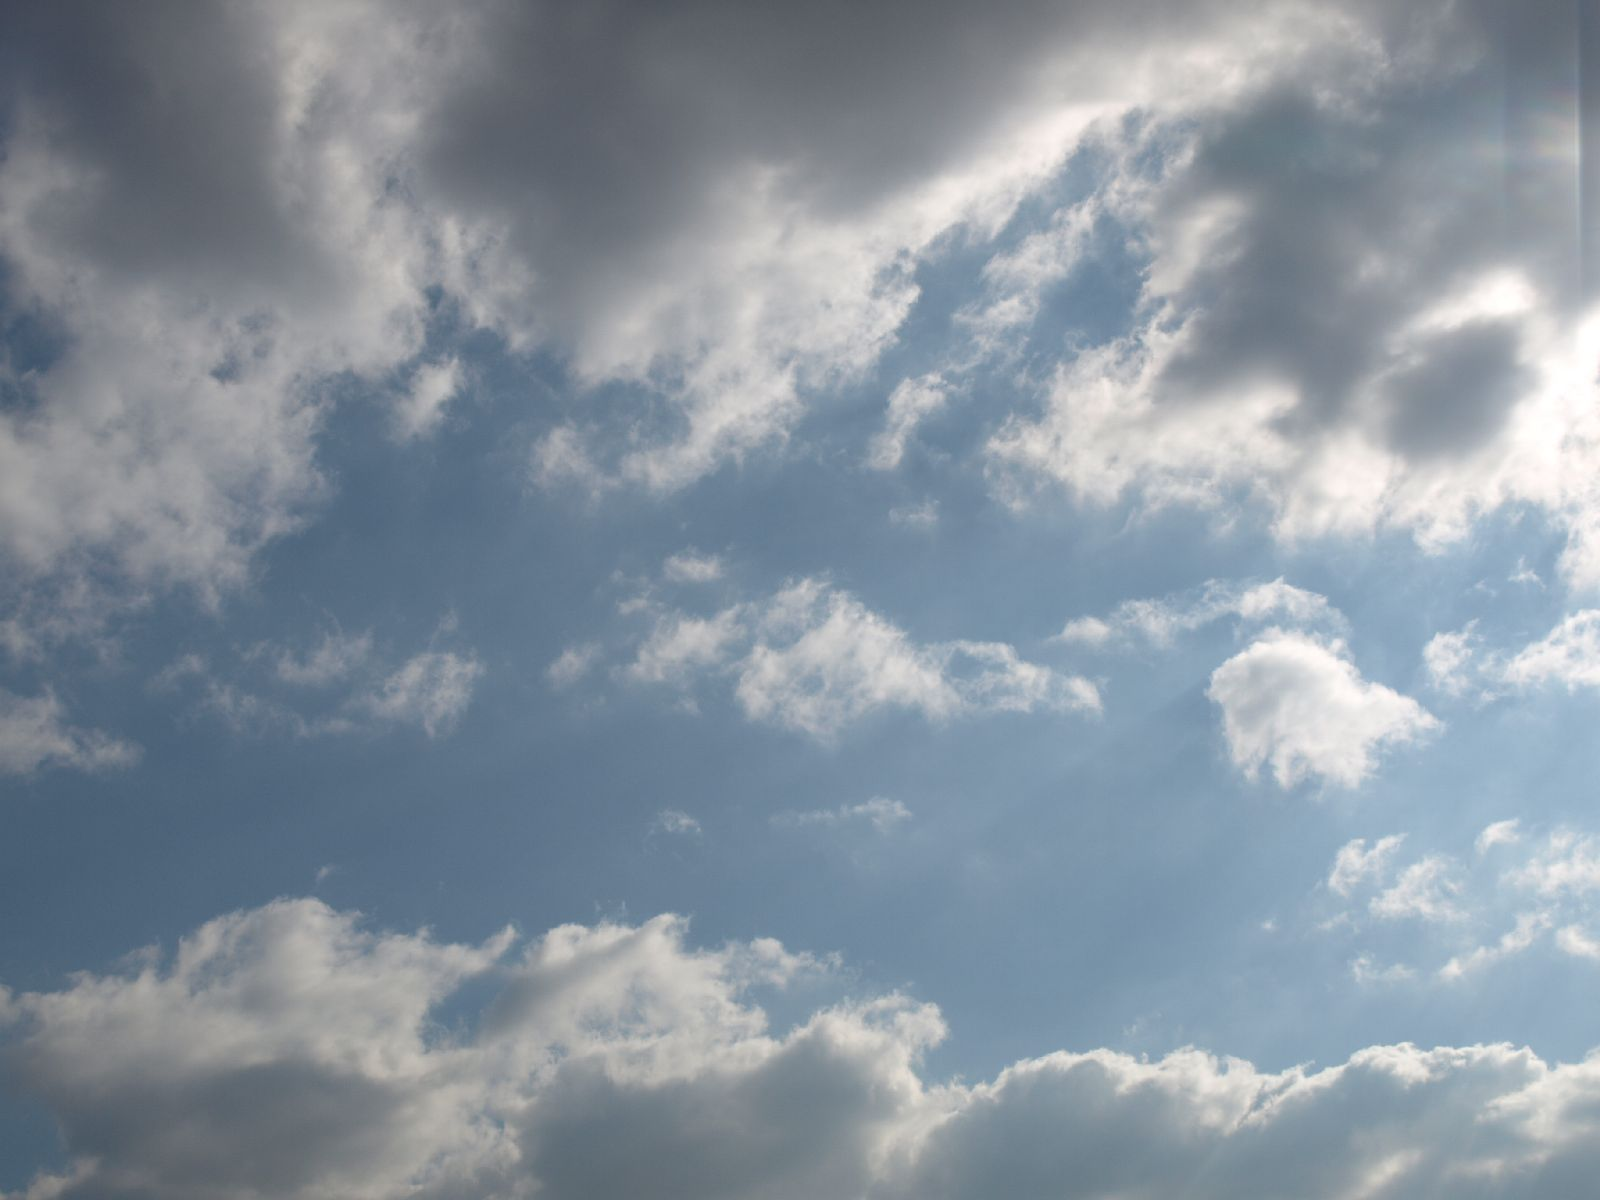 Sky_Clouds_Photo_Texture_A_P4171314